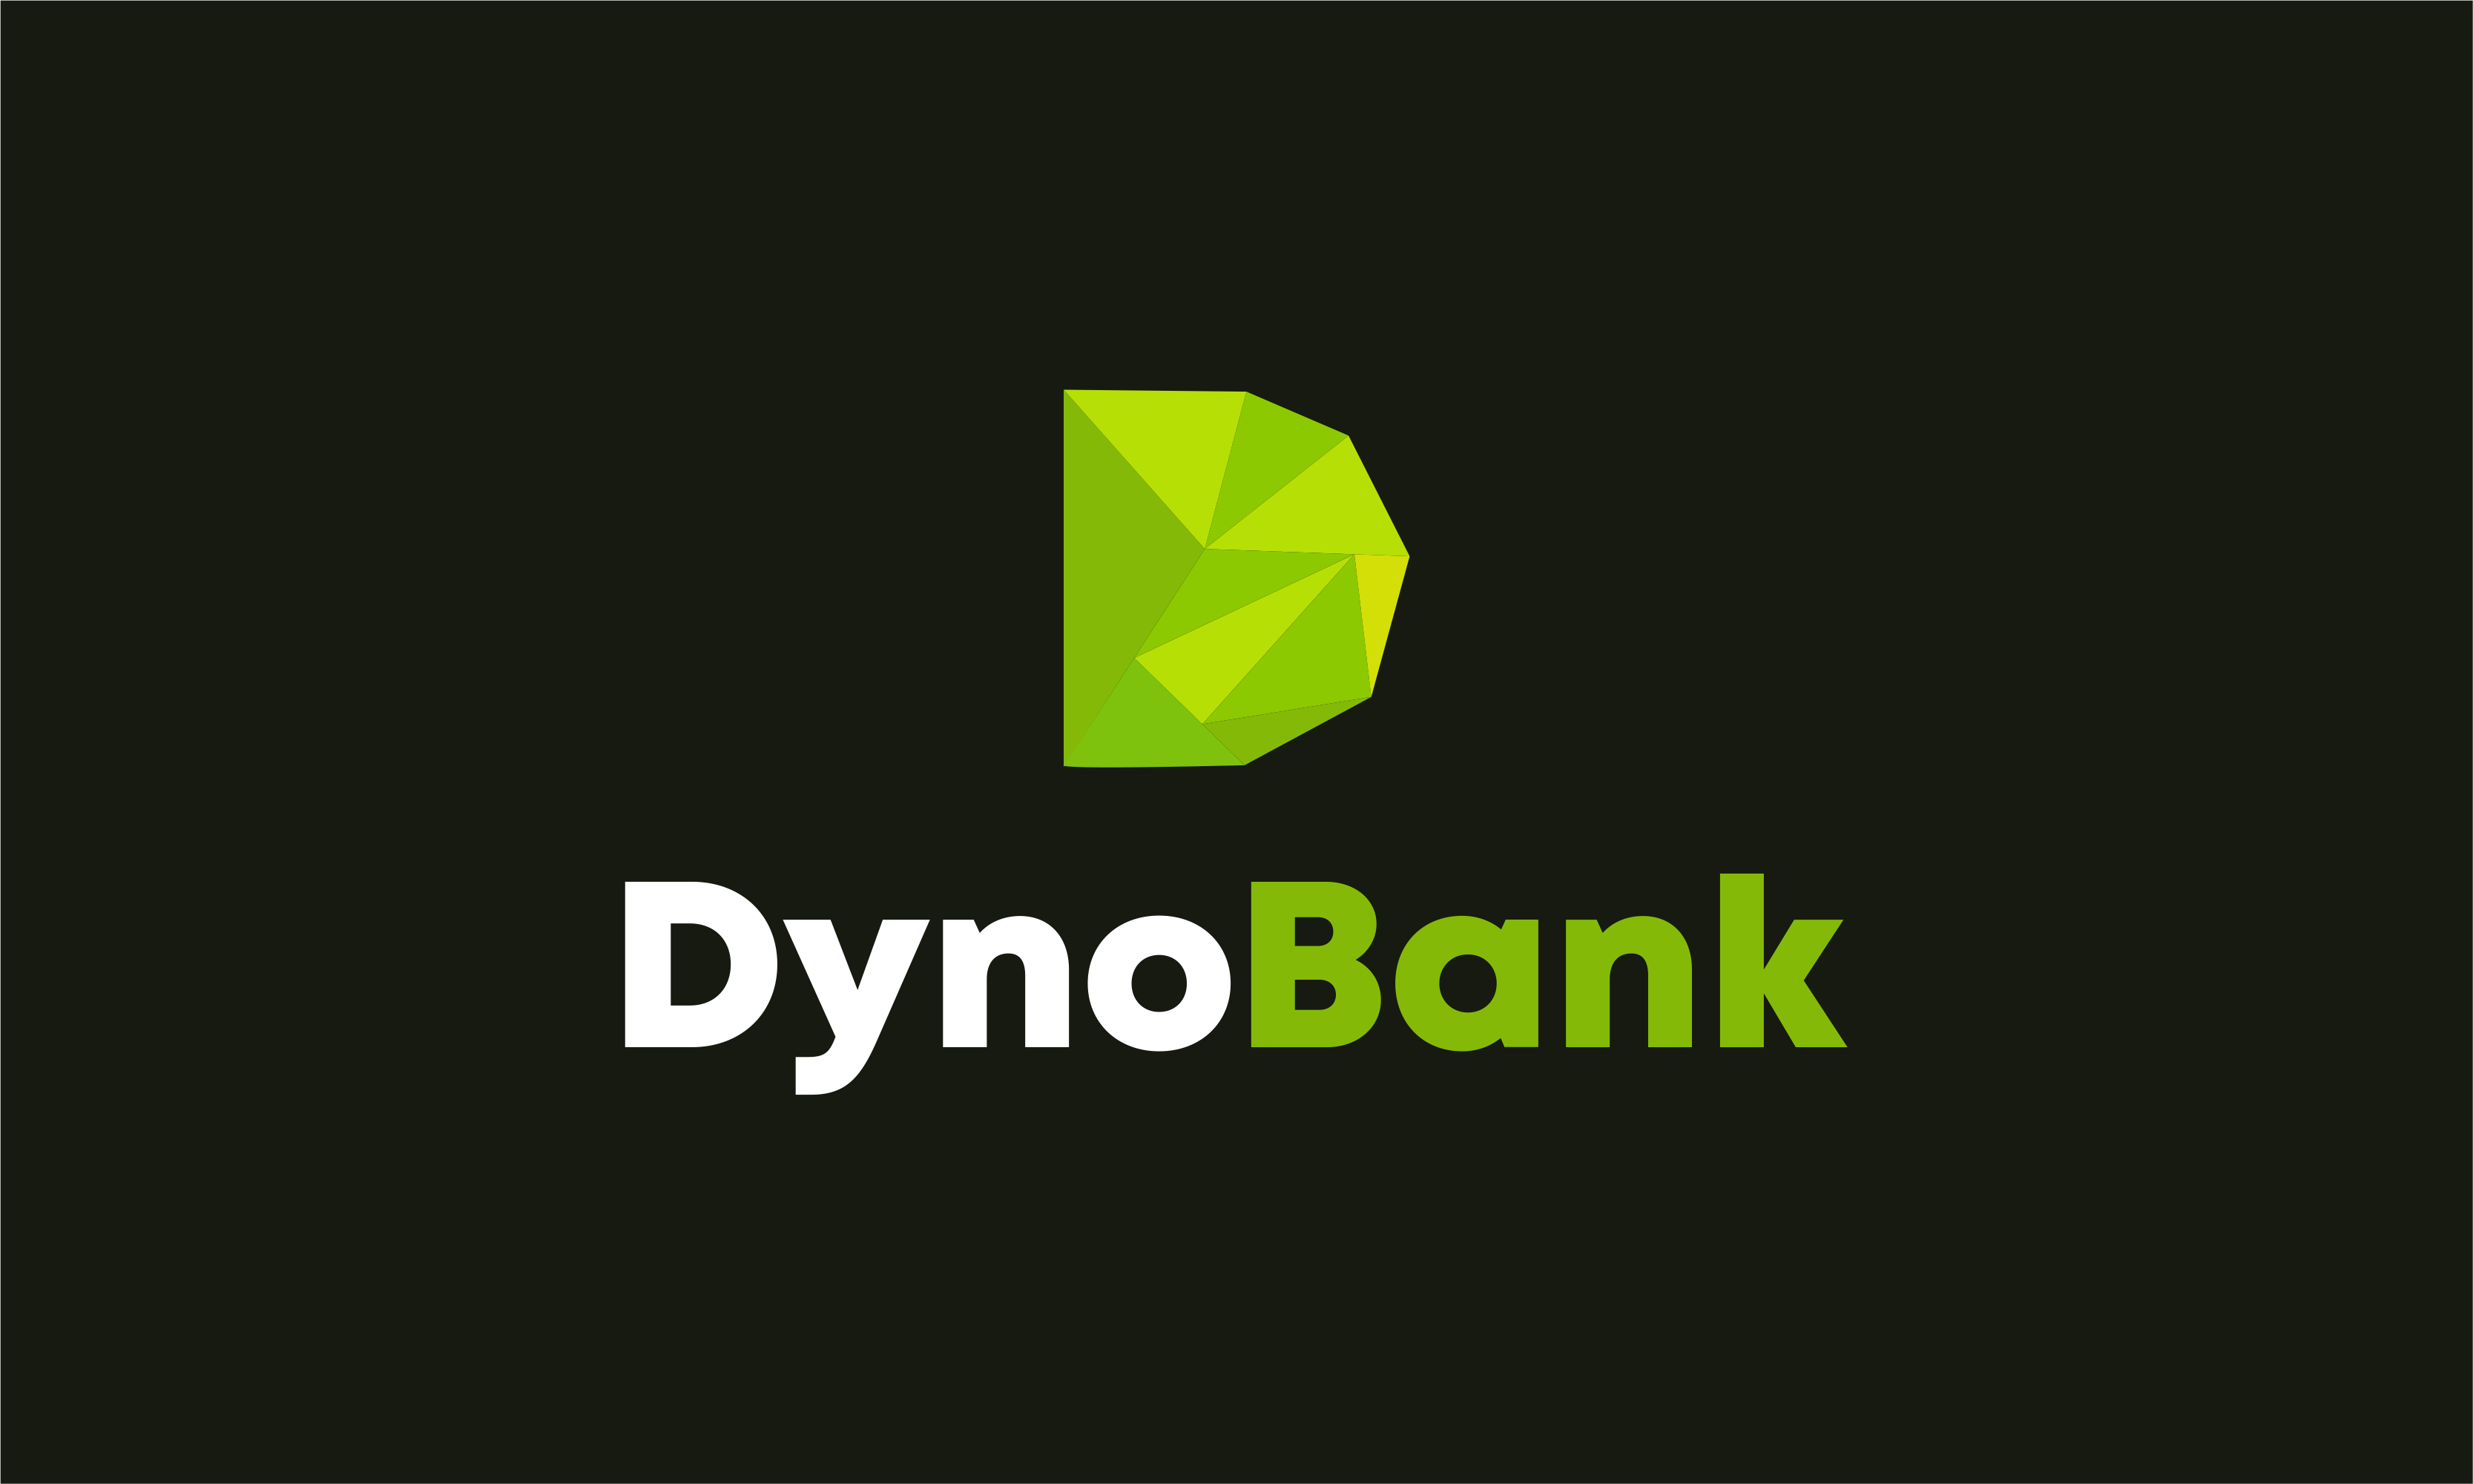 Dynobank - Banking business name for sale